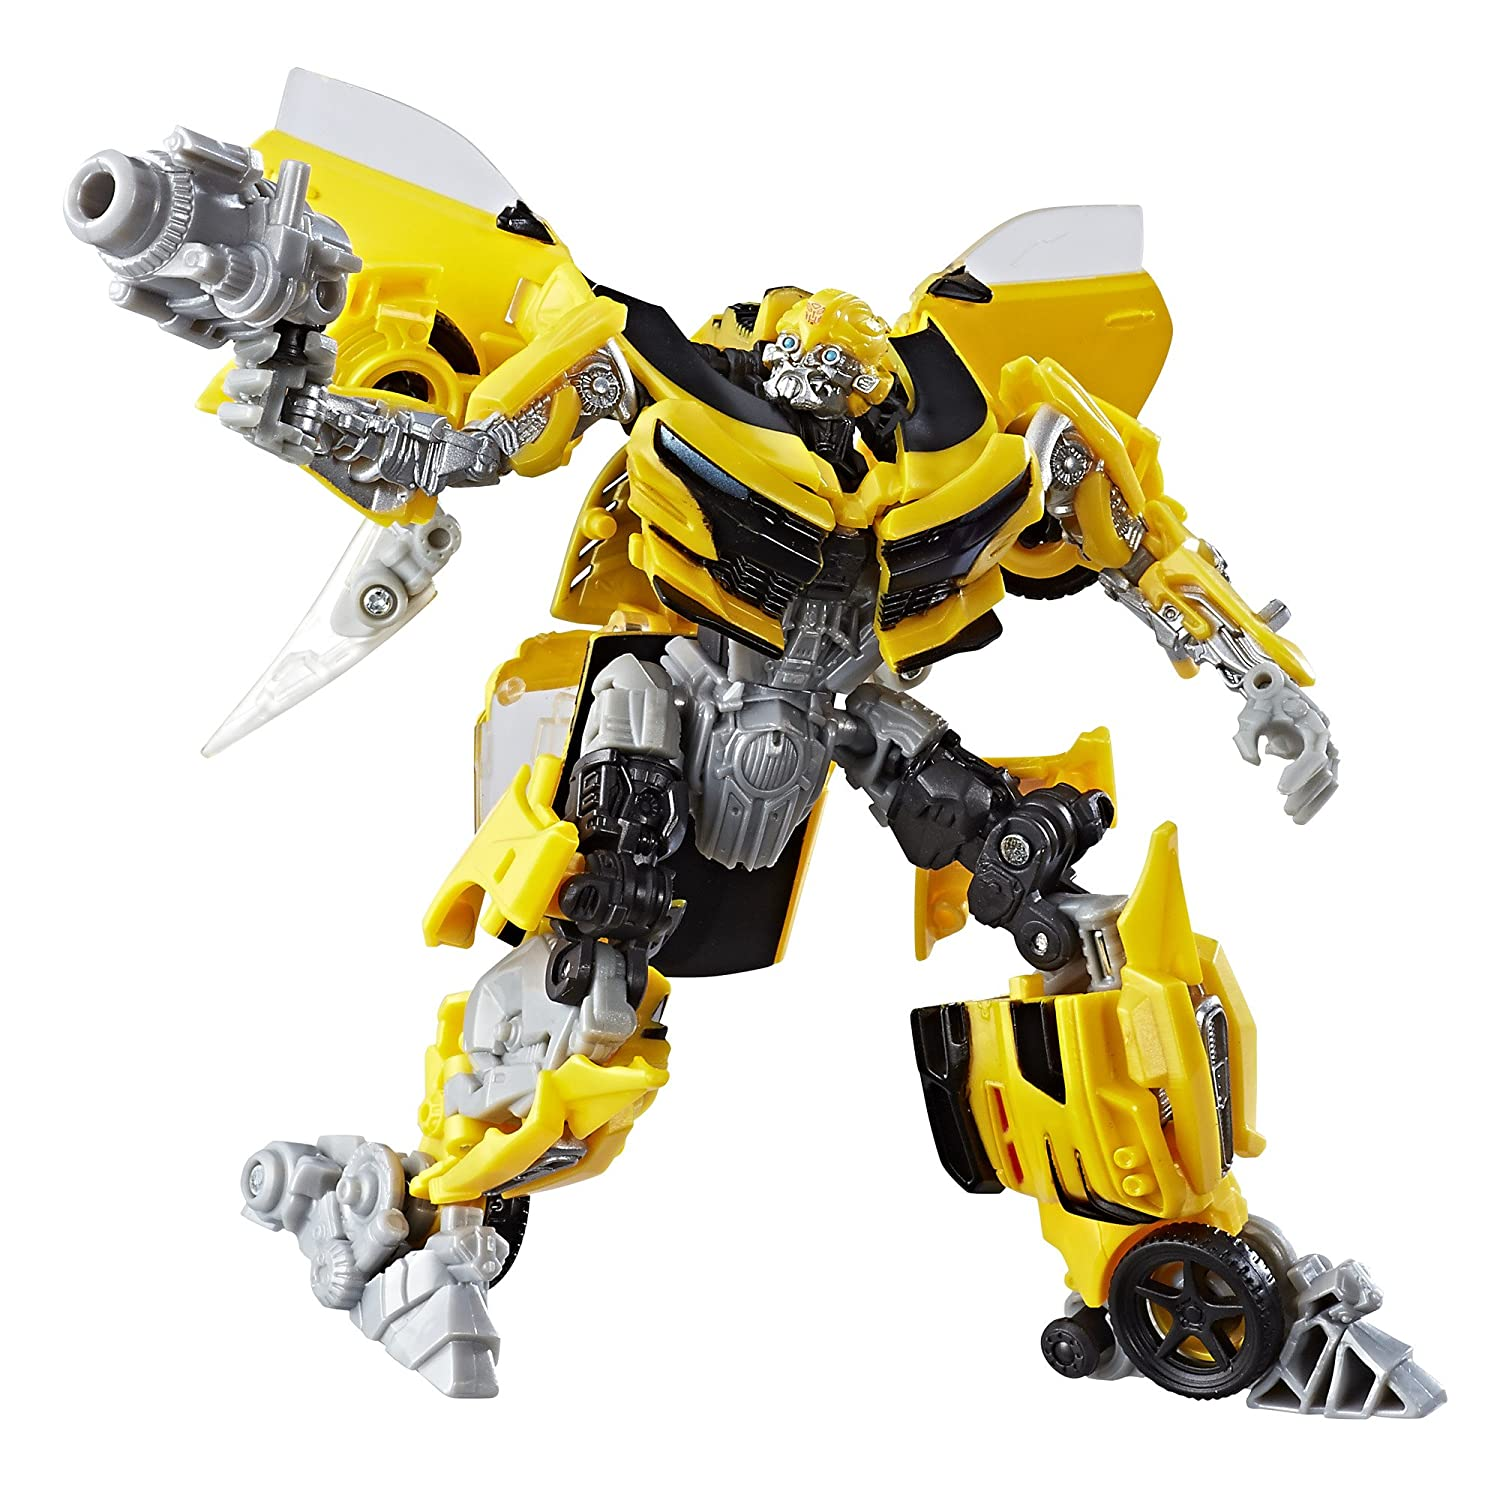 Transformers Die Letzten Knight Film Deluxe Premier Edition Autobot Drift Hasbro C2400AS0